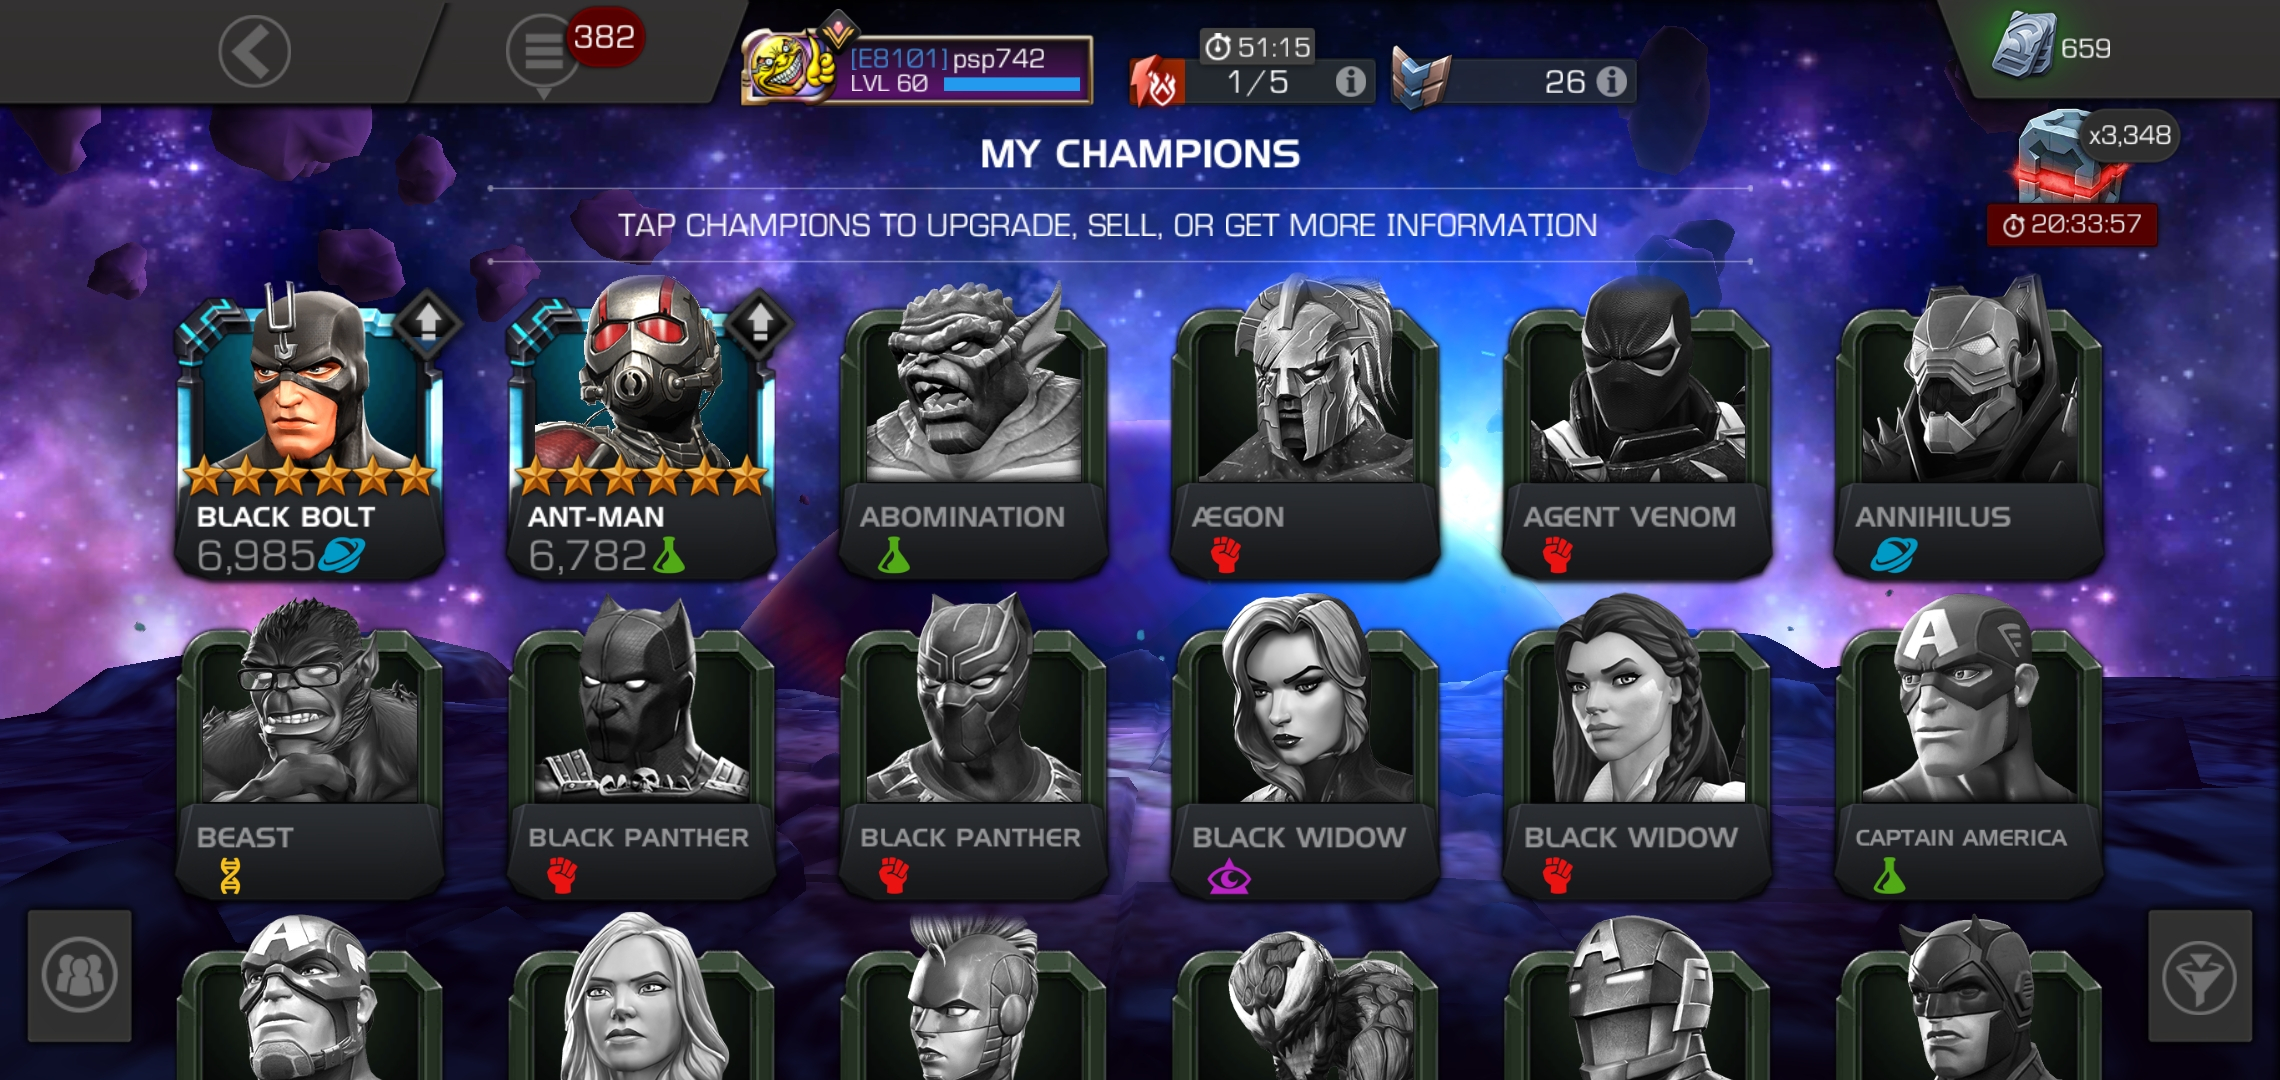 My Current 6 Champions From First To Latest Page 5 Marvel Contest Of Champions Grate mandela effect here in the frost poem he says not everything of gold can stay golden. contest of champions forum marvel contest of champions